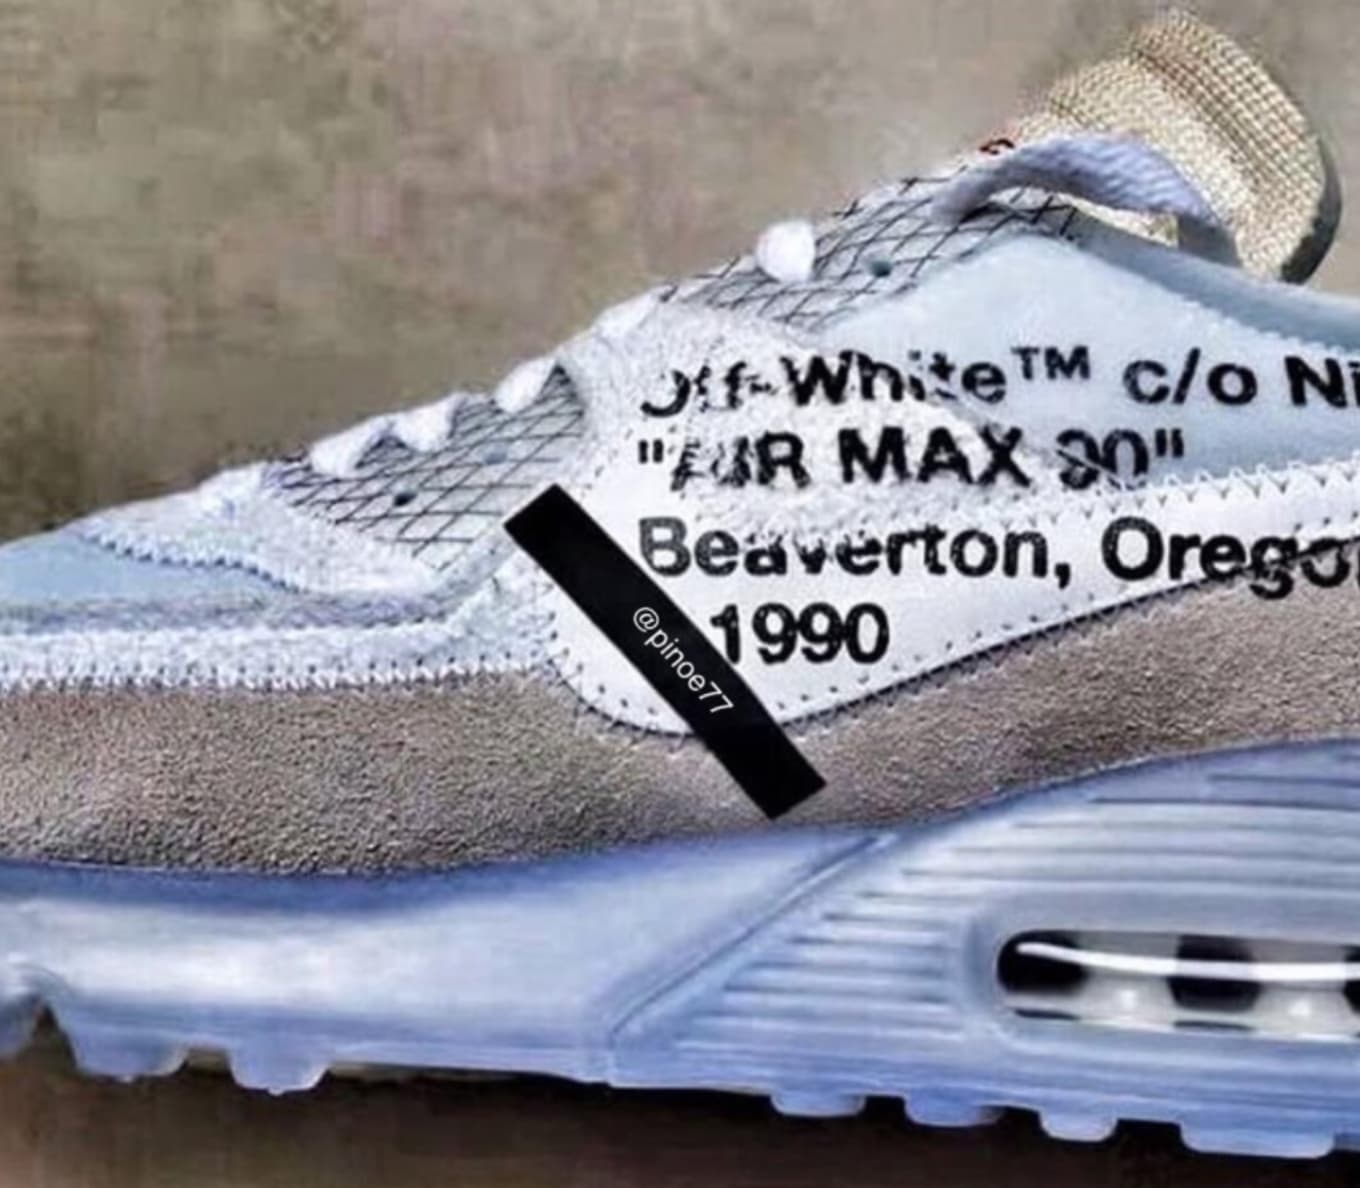 c0bb87b6ac 10 Off-White Nikes and Jordans Releasing. Looks like Virgil Abloh has a  very ambitious Nike pack in the works.